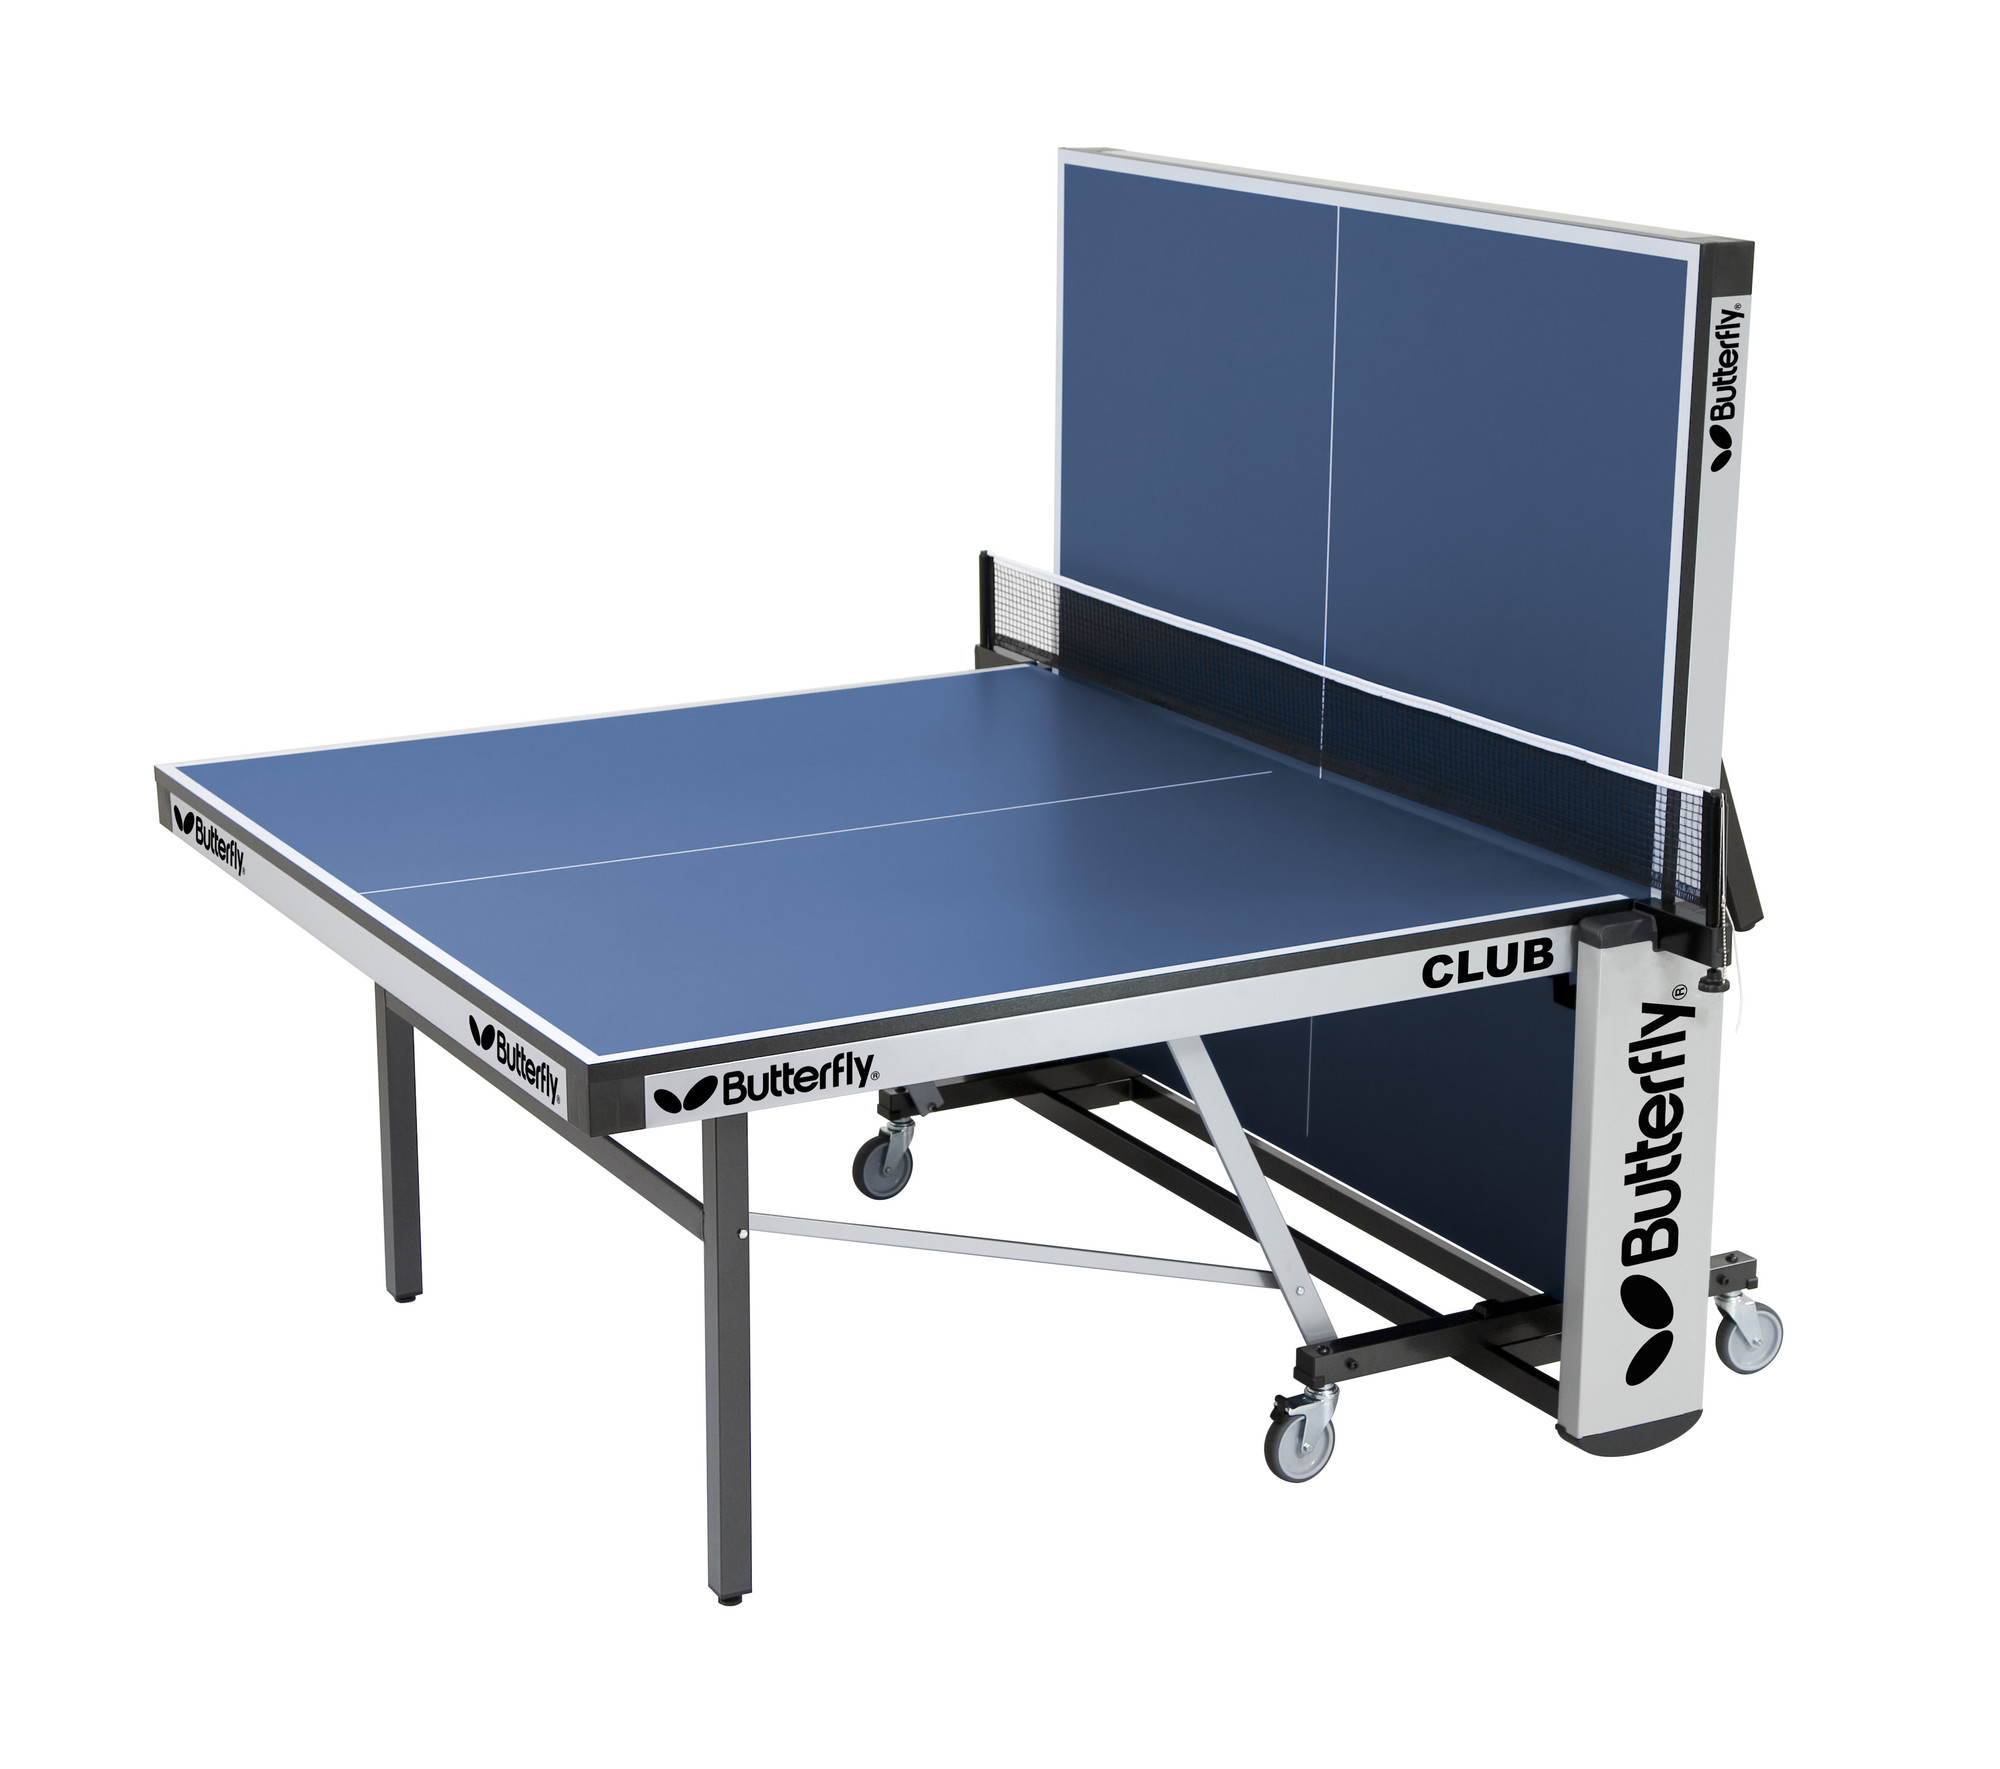 Butterfly Club Rollaway Table Tennis Table   Walmart.com